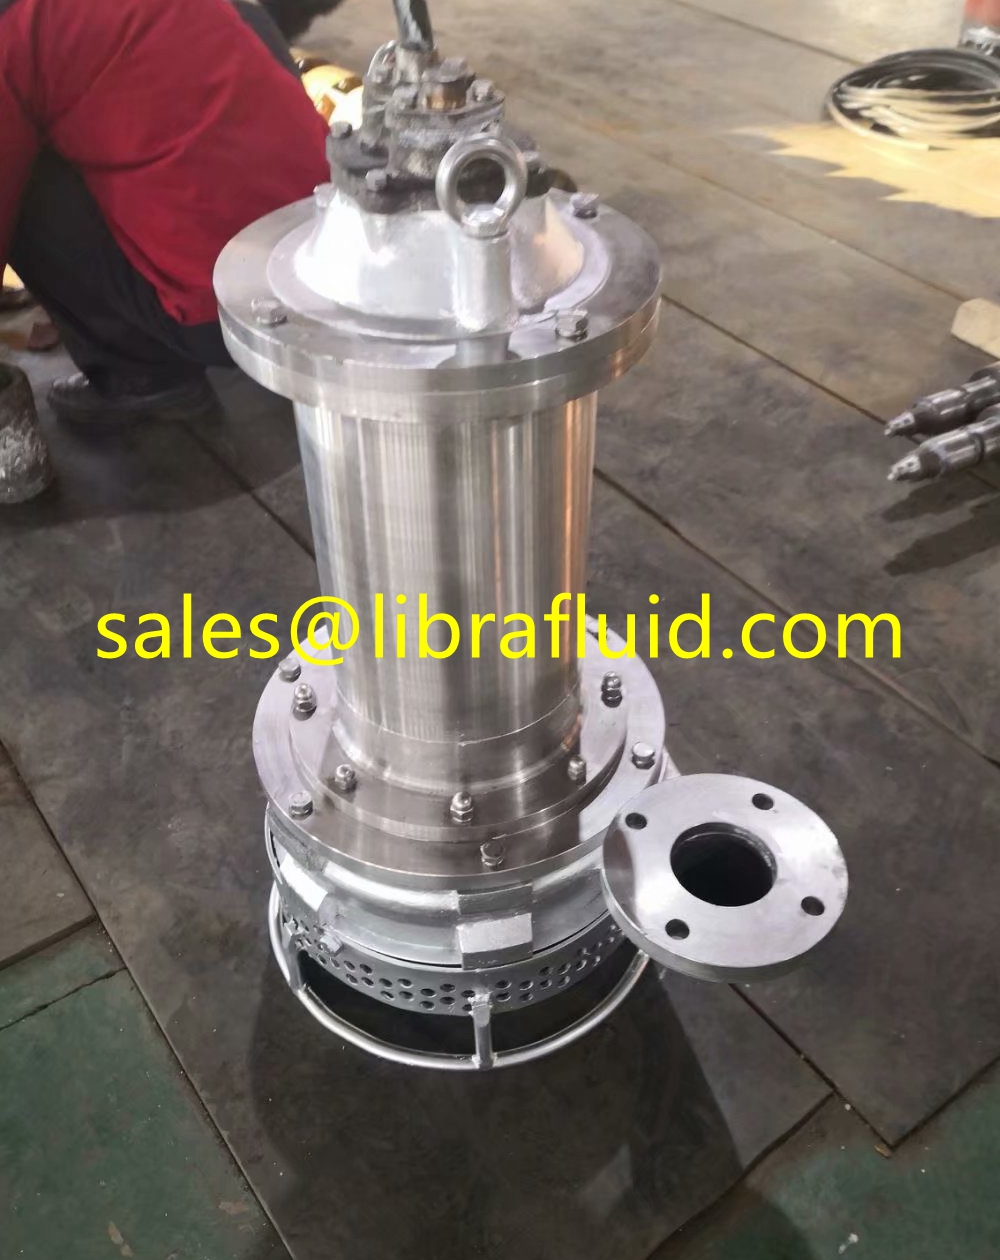 Stainless steel Submersible slurry pump installation for chemical slurry condition